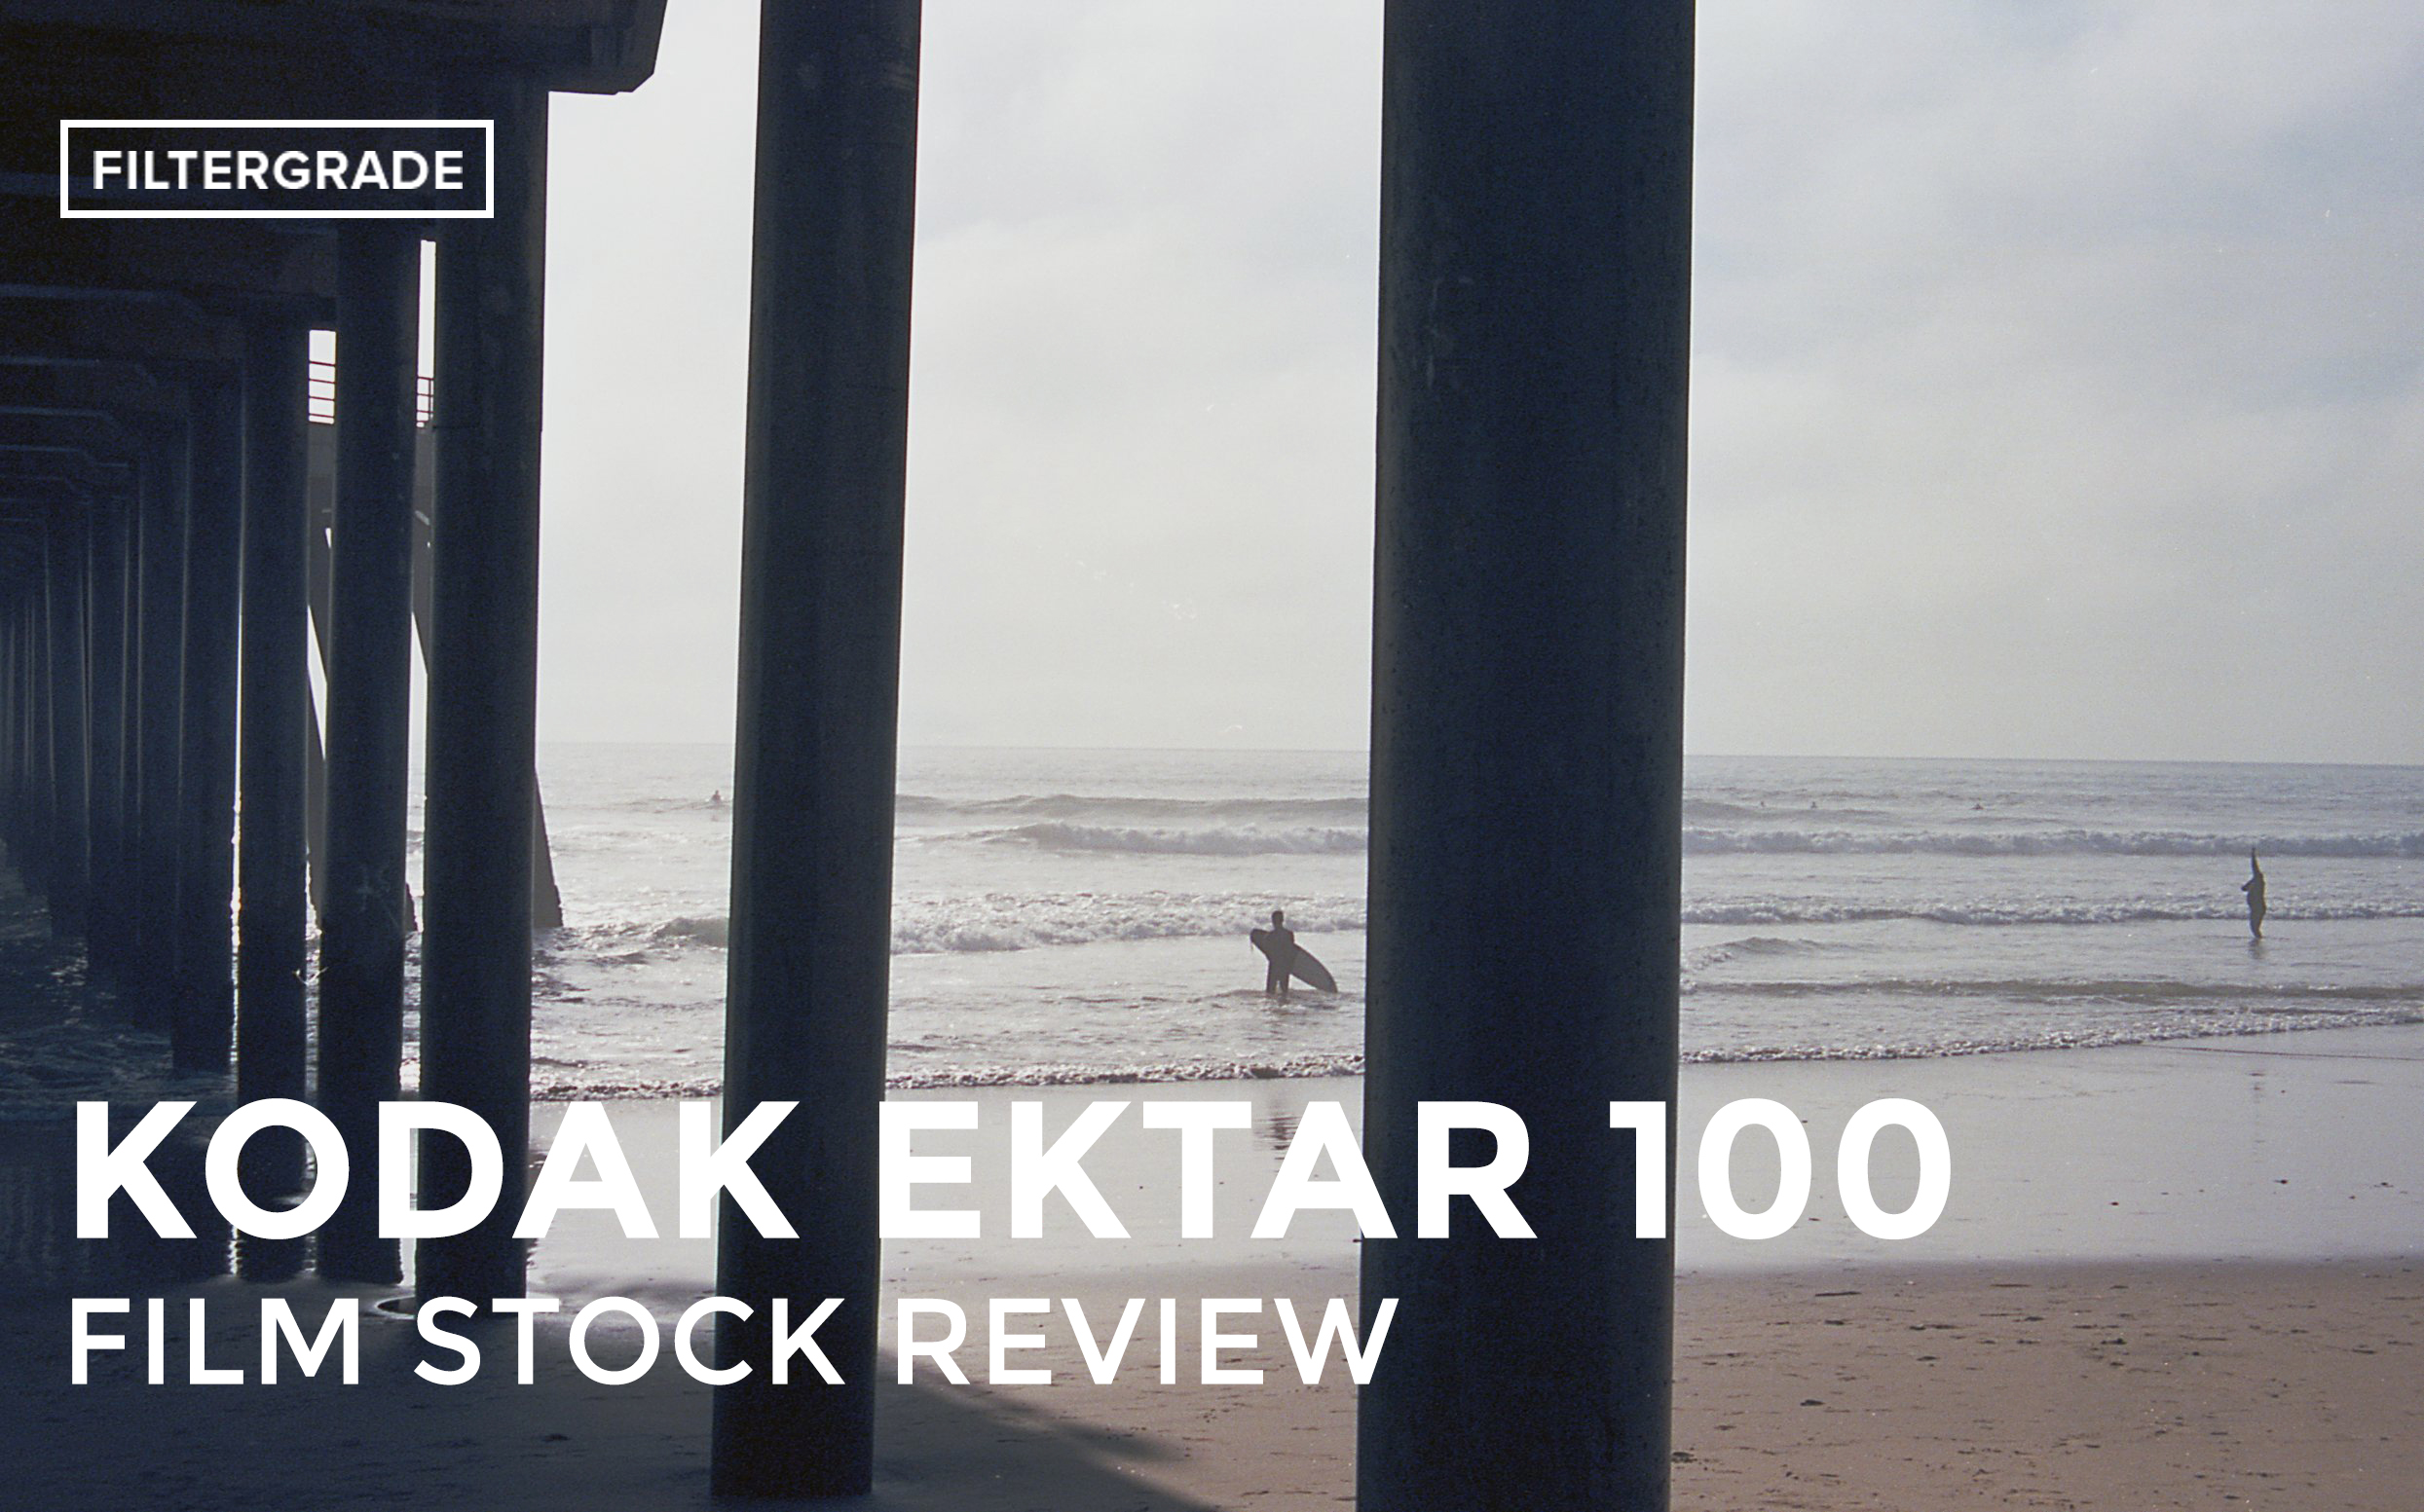 Featured - Kodak EKTAR 100 Film Stock Review - FilterGrade